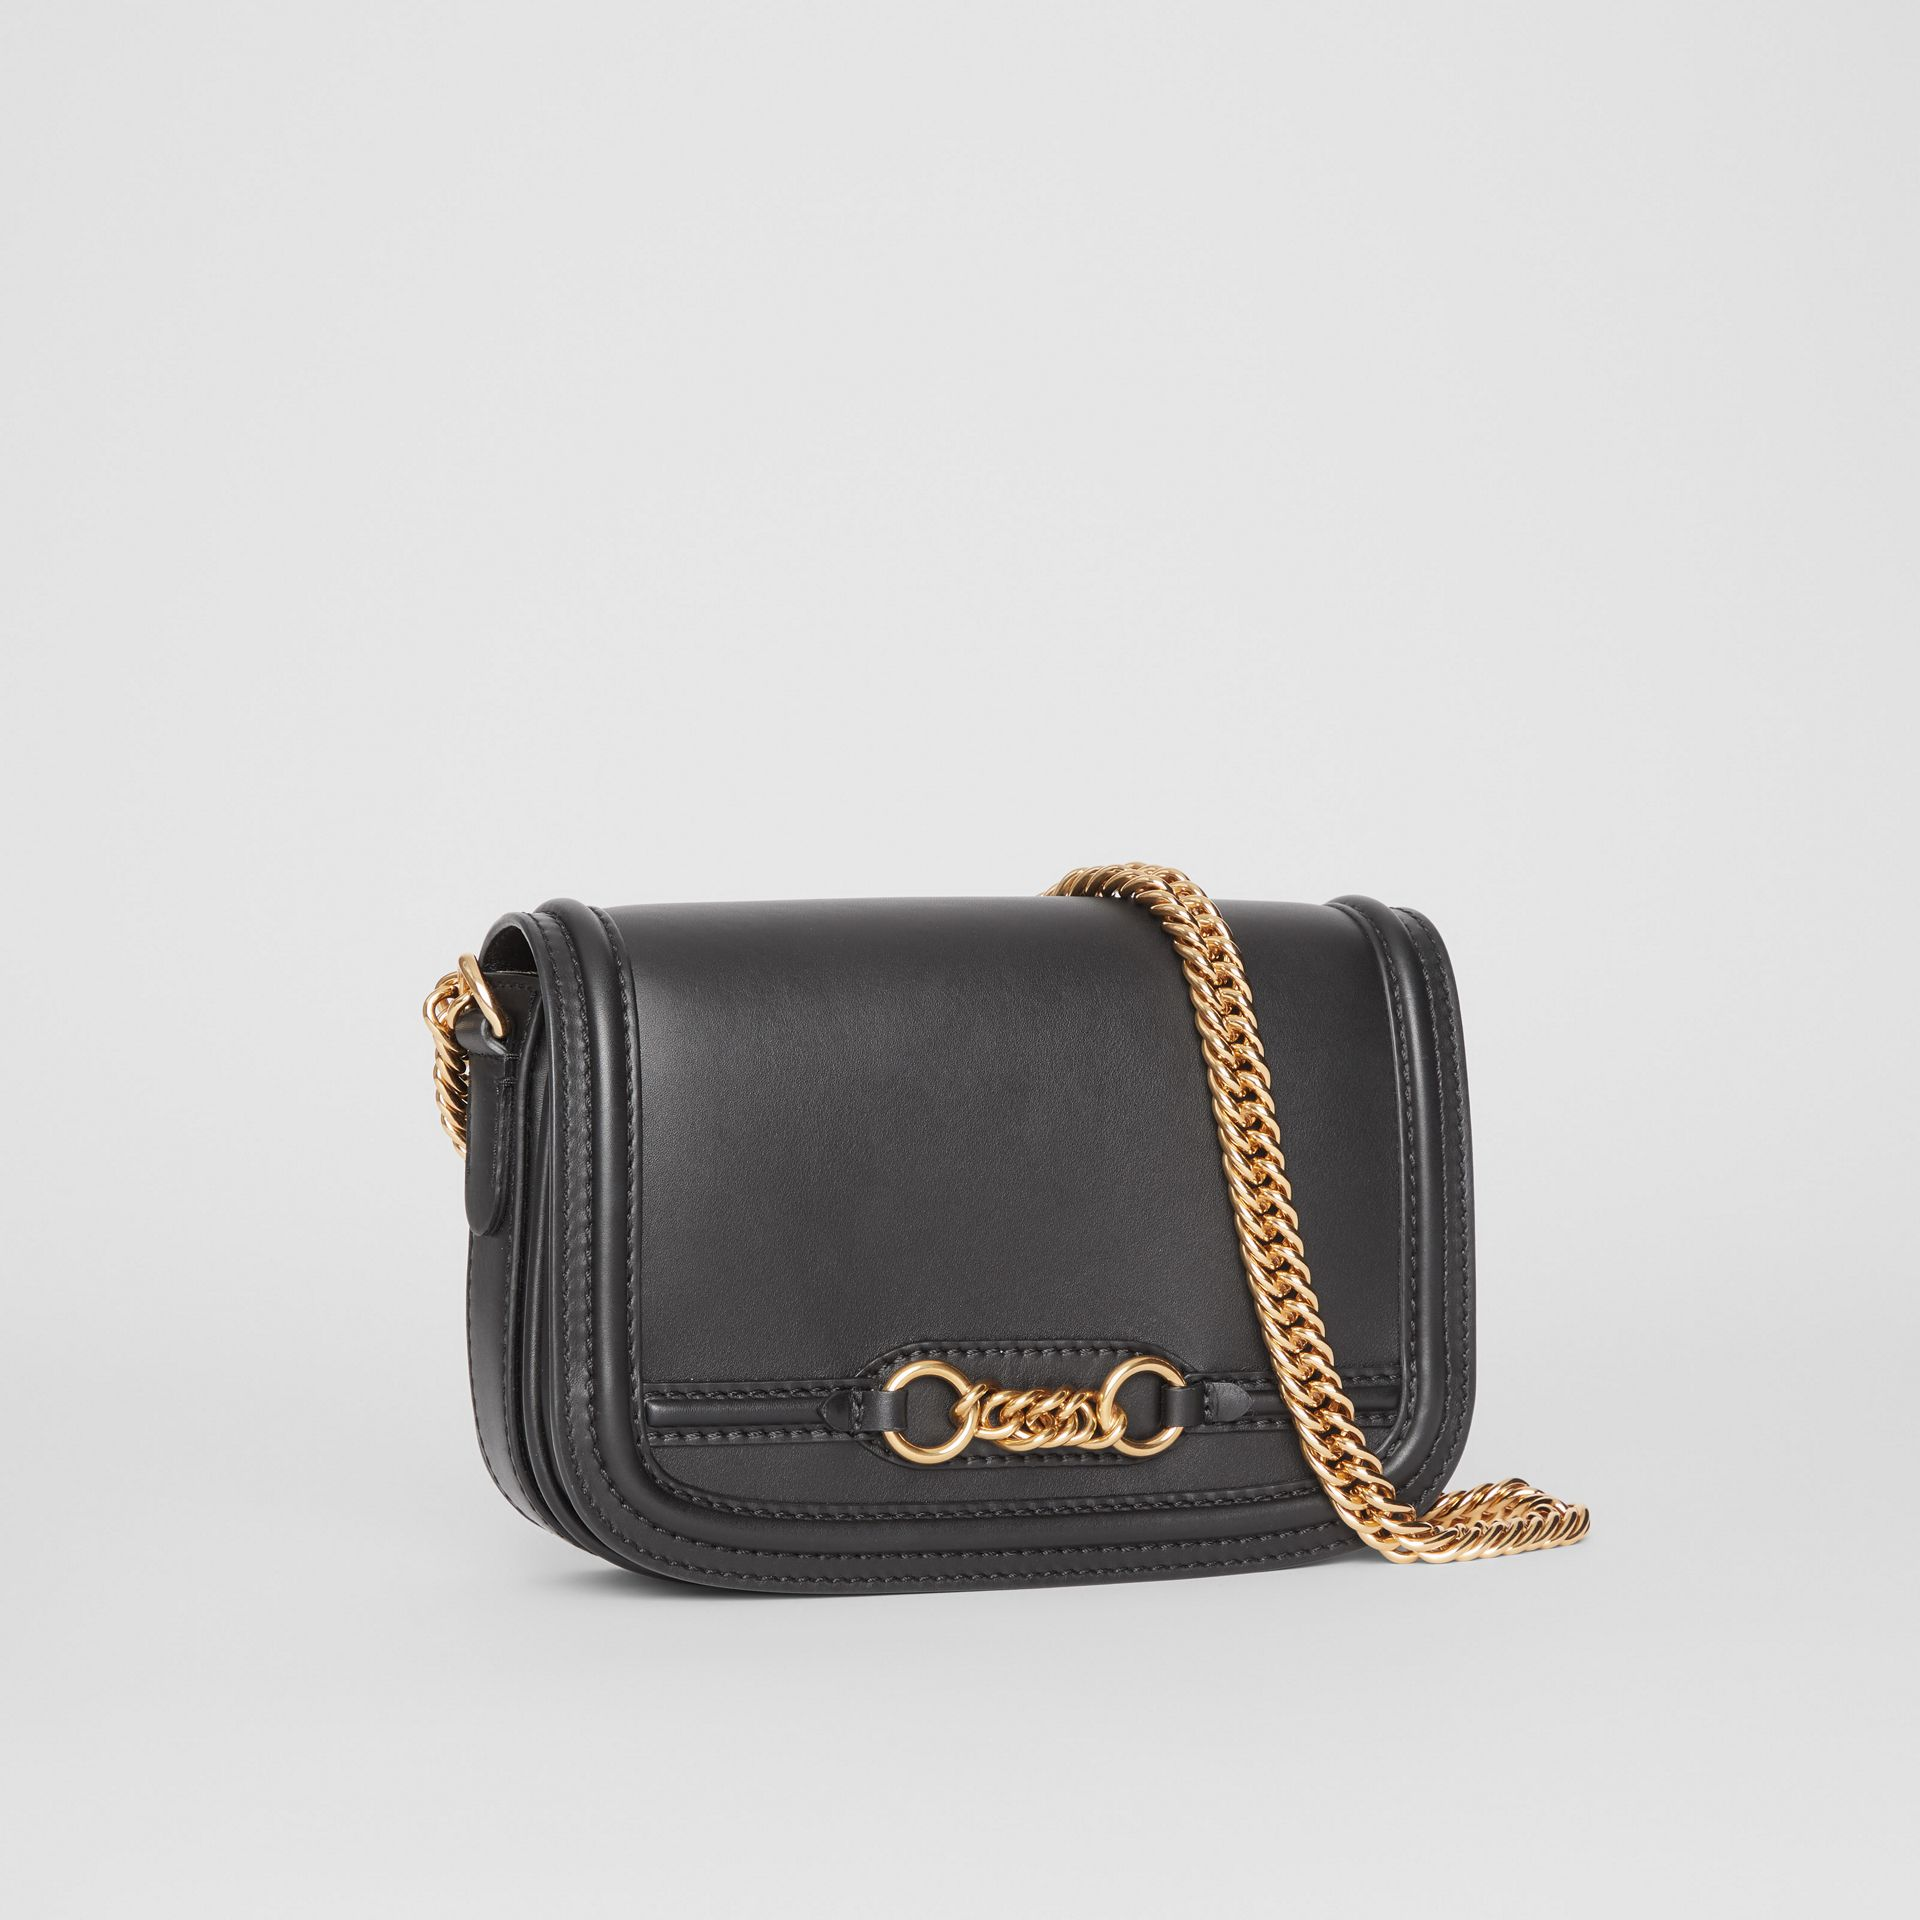 Sac The Link en cuir (Noir) - Femme | Burberry - photo de la galerie 6